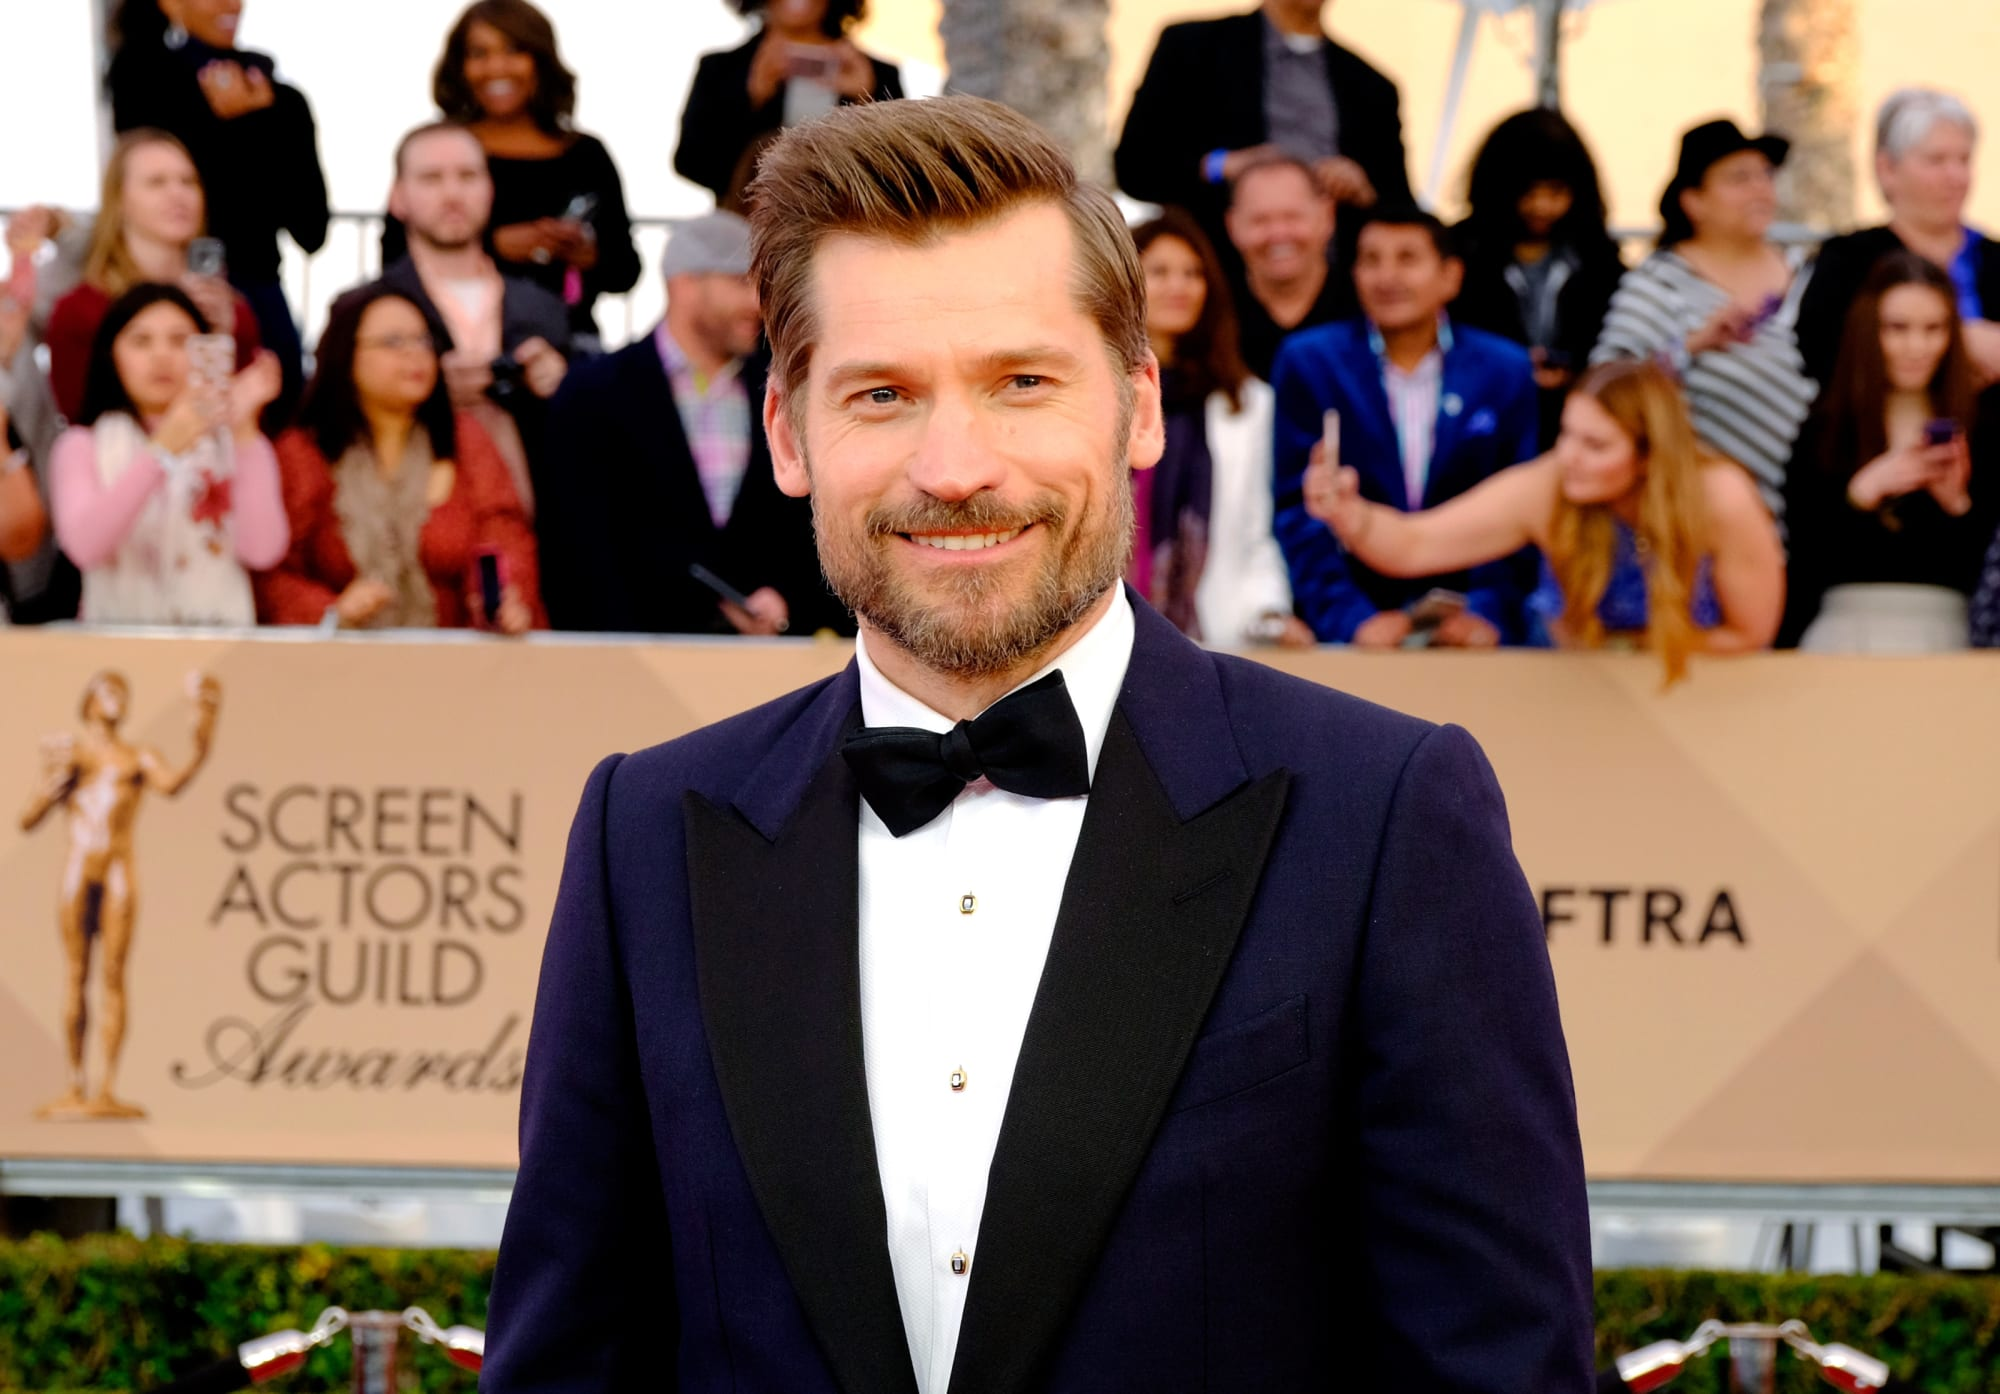 Nikolaj Coster-Waldau is adapting a gothic horror novel, and other Game of Thrones bits